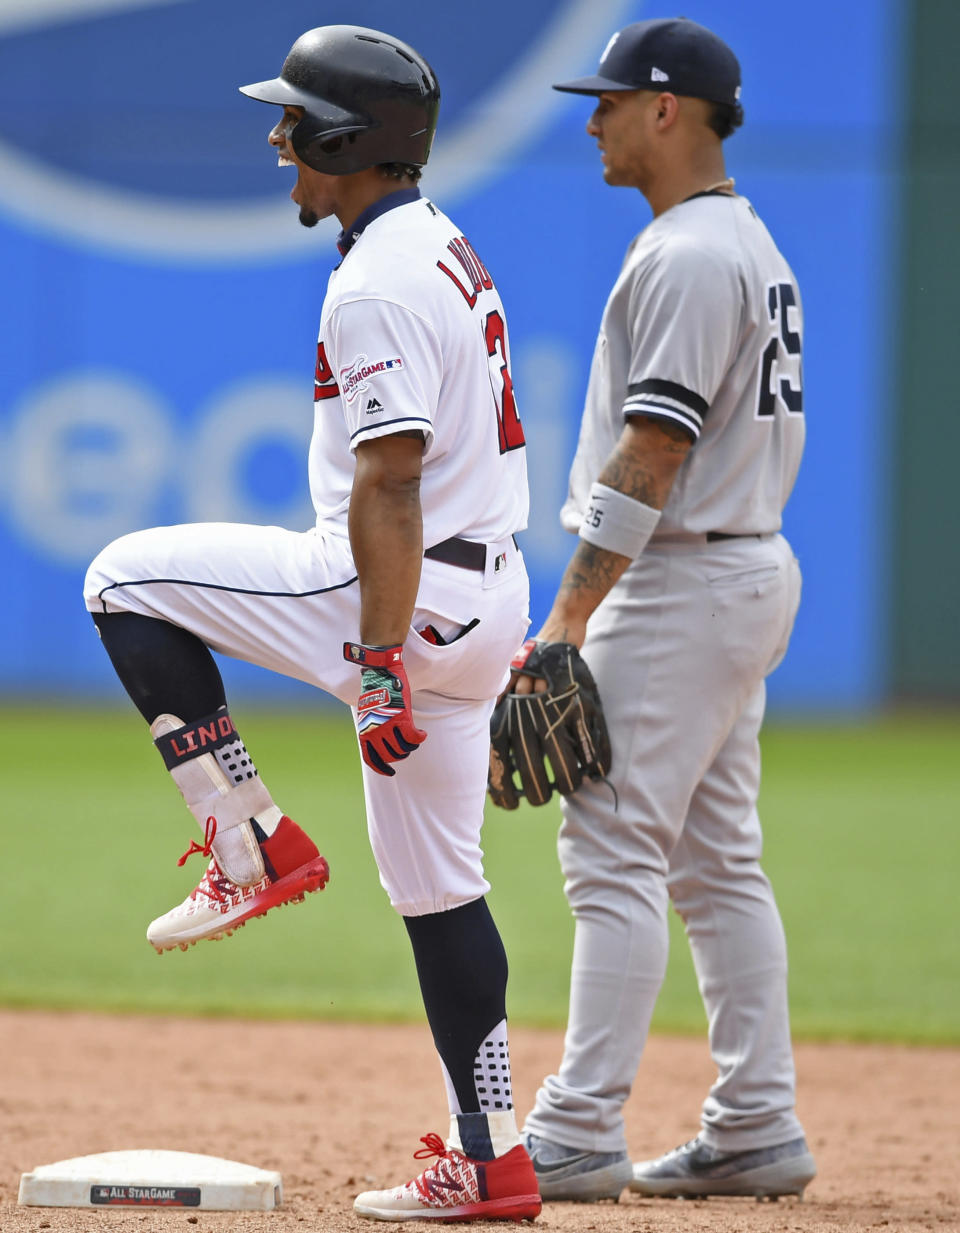 Cleveland Indians' Francisco Lindor celebrates after reaching second base on an error by New York Yankees' Didi Gregorius in the ninth inning of a baseball game, Sunday, June 9, 2019, in Cleveland. Jose Ramirez would score. The Yankees won 7-6. (AP Photo/David Dermer)